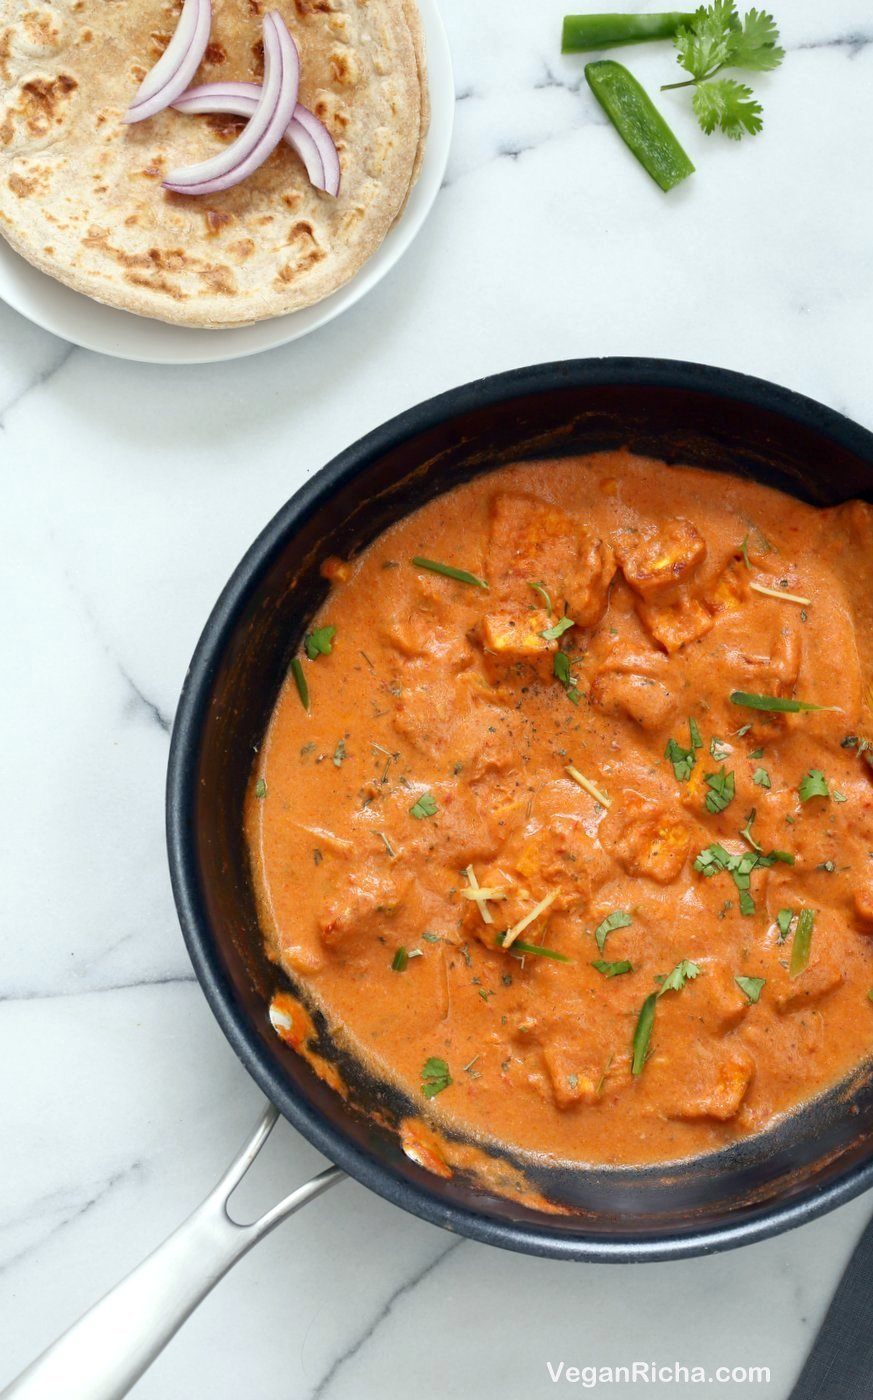 "Restaurant Style Tofu Butter Masala Recipe - Indian Butter Tofu ""Paneer"". Dairy-free Tofu Paneer Butter Masala. Tofu is marinated and baked then simmered in tomato ginger cashew sauce. Vegan Gluten-free Recipe 